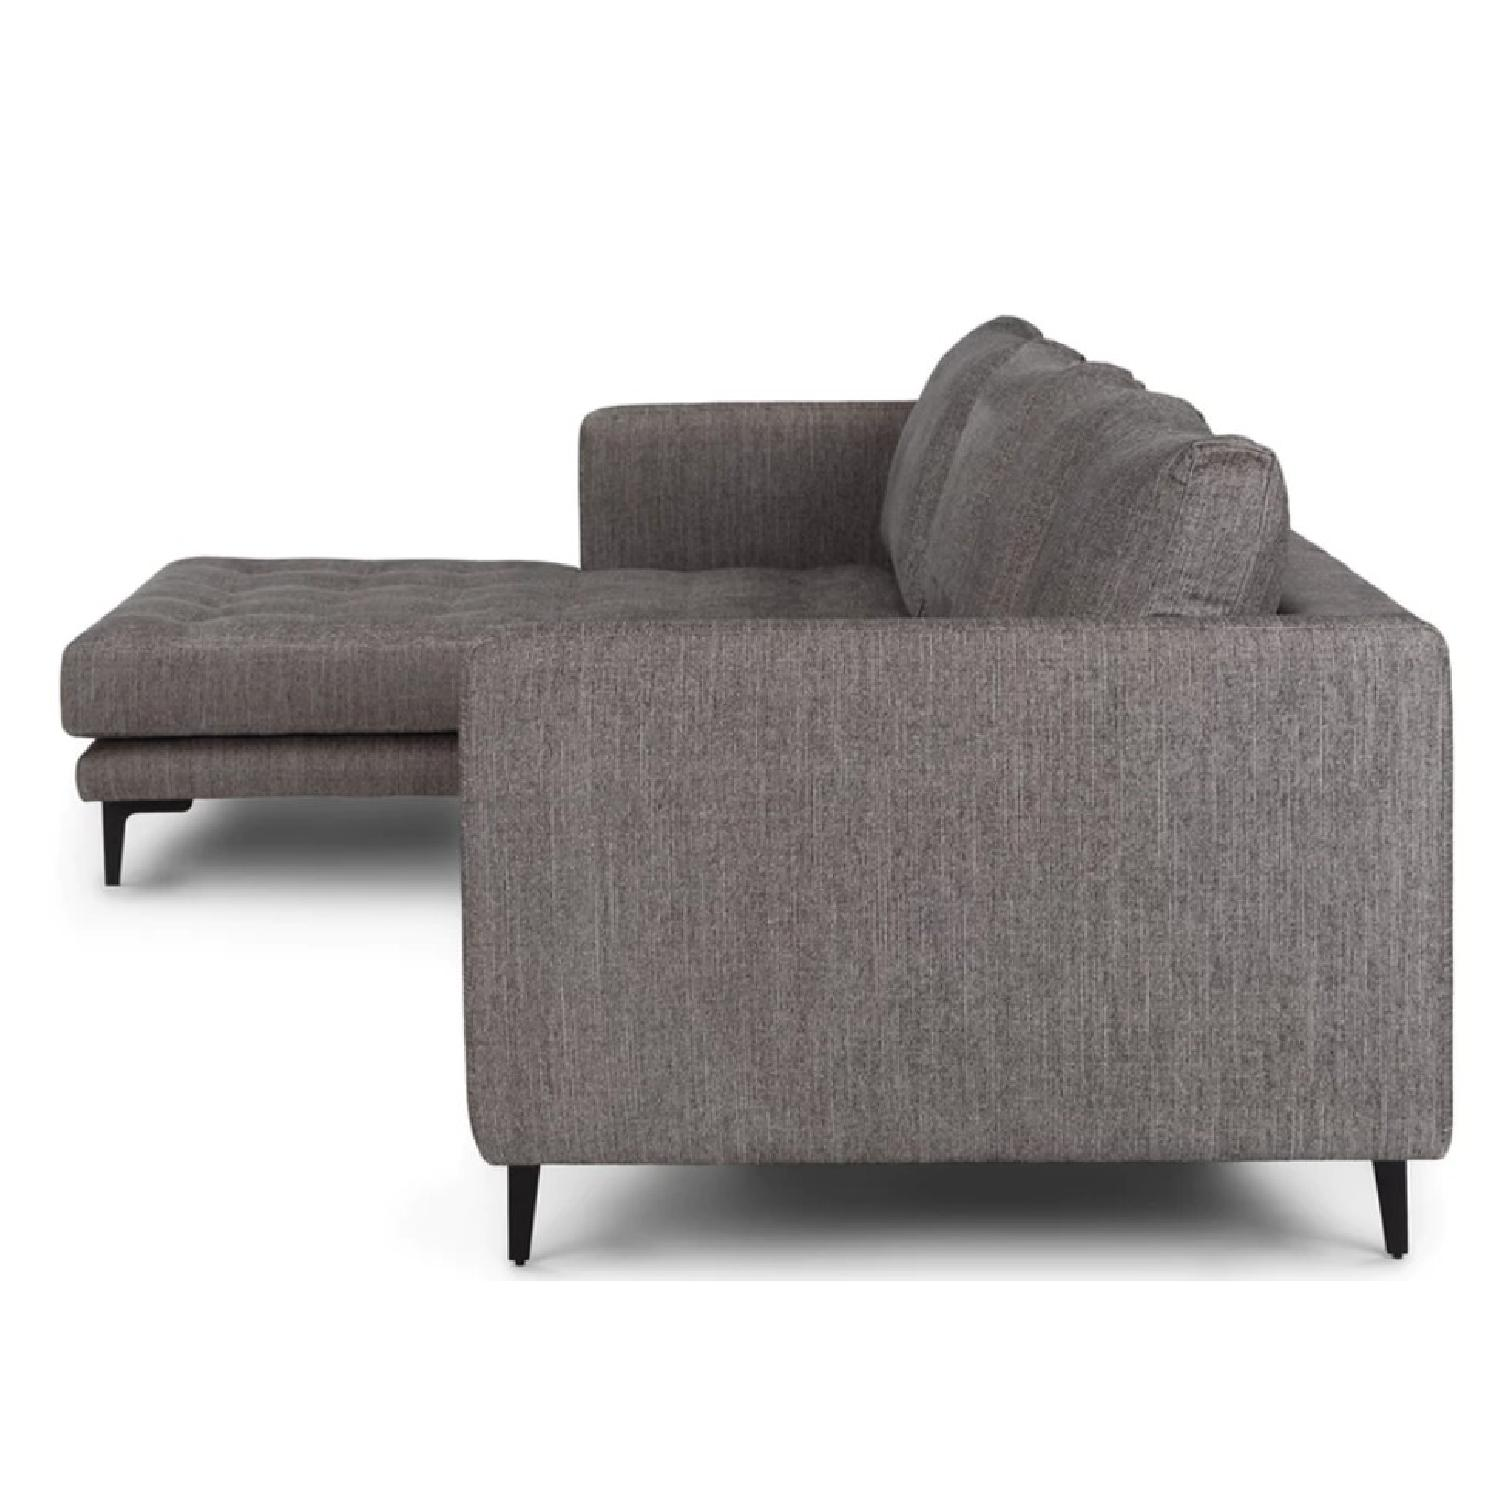 Peachy Article Parker Left Facing Sectional Sofa Aptdeco Ocoug Best Dining Table And Chair Ideas Images Ocougorg